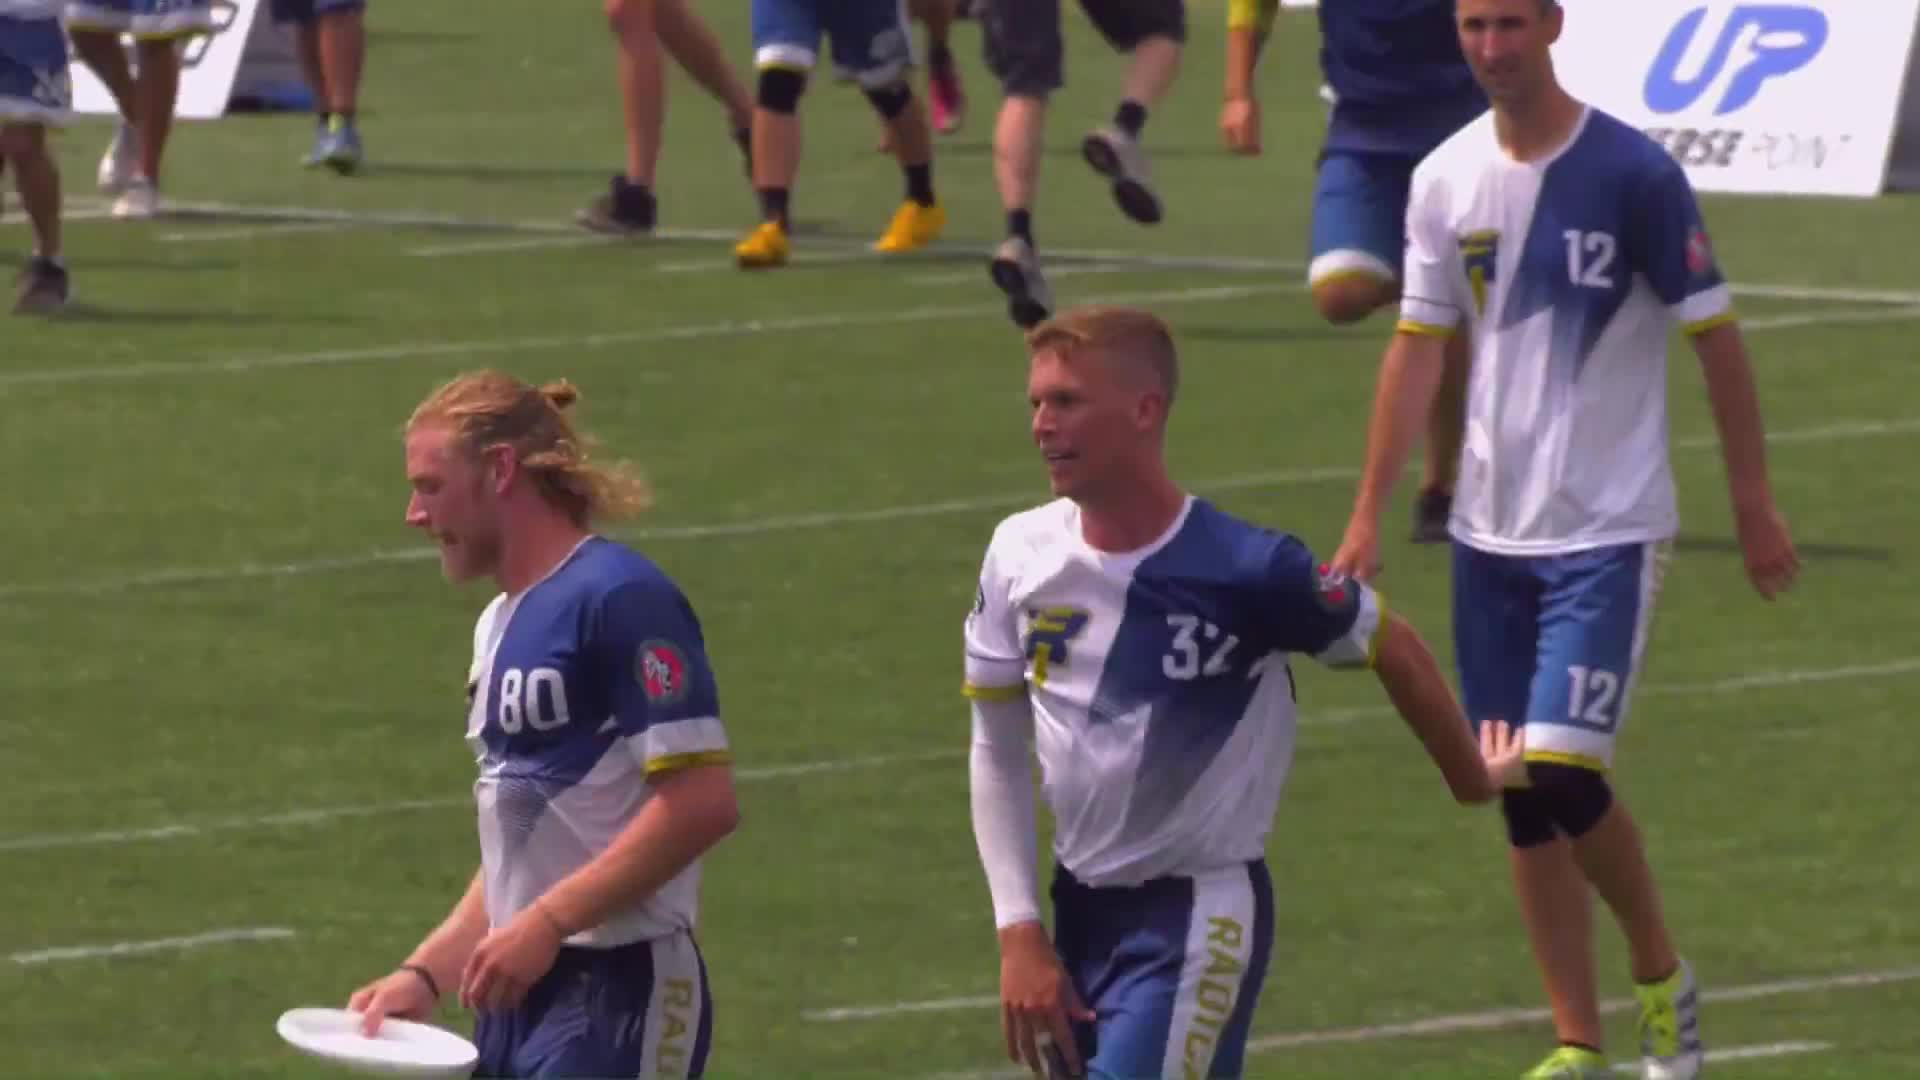 Sports, TheAUDLChannel, american ultimate disc league, audl, highlights, kevin pettit-scantling, madison radicals, sports, theaudlchannel, ultimate, ultimate frisbee, Kevin Pettit-Scantling CPR Celebration GIFs